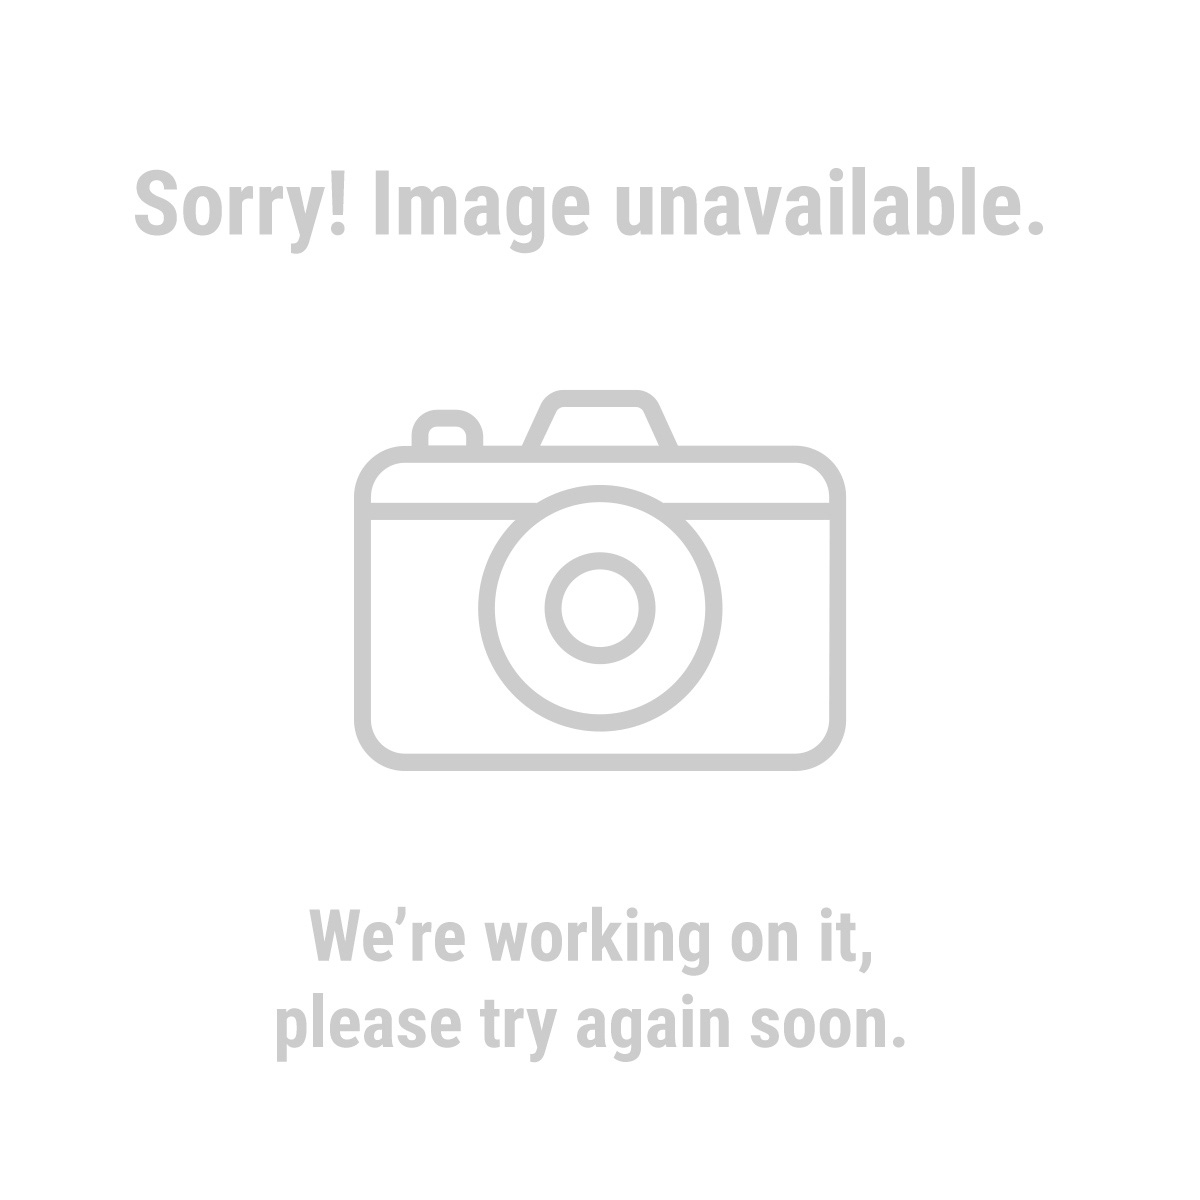 Badland® 96127 1500 lb. Capacity 120 Volt AC Electric Winch